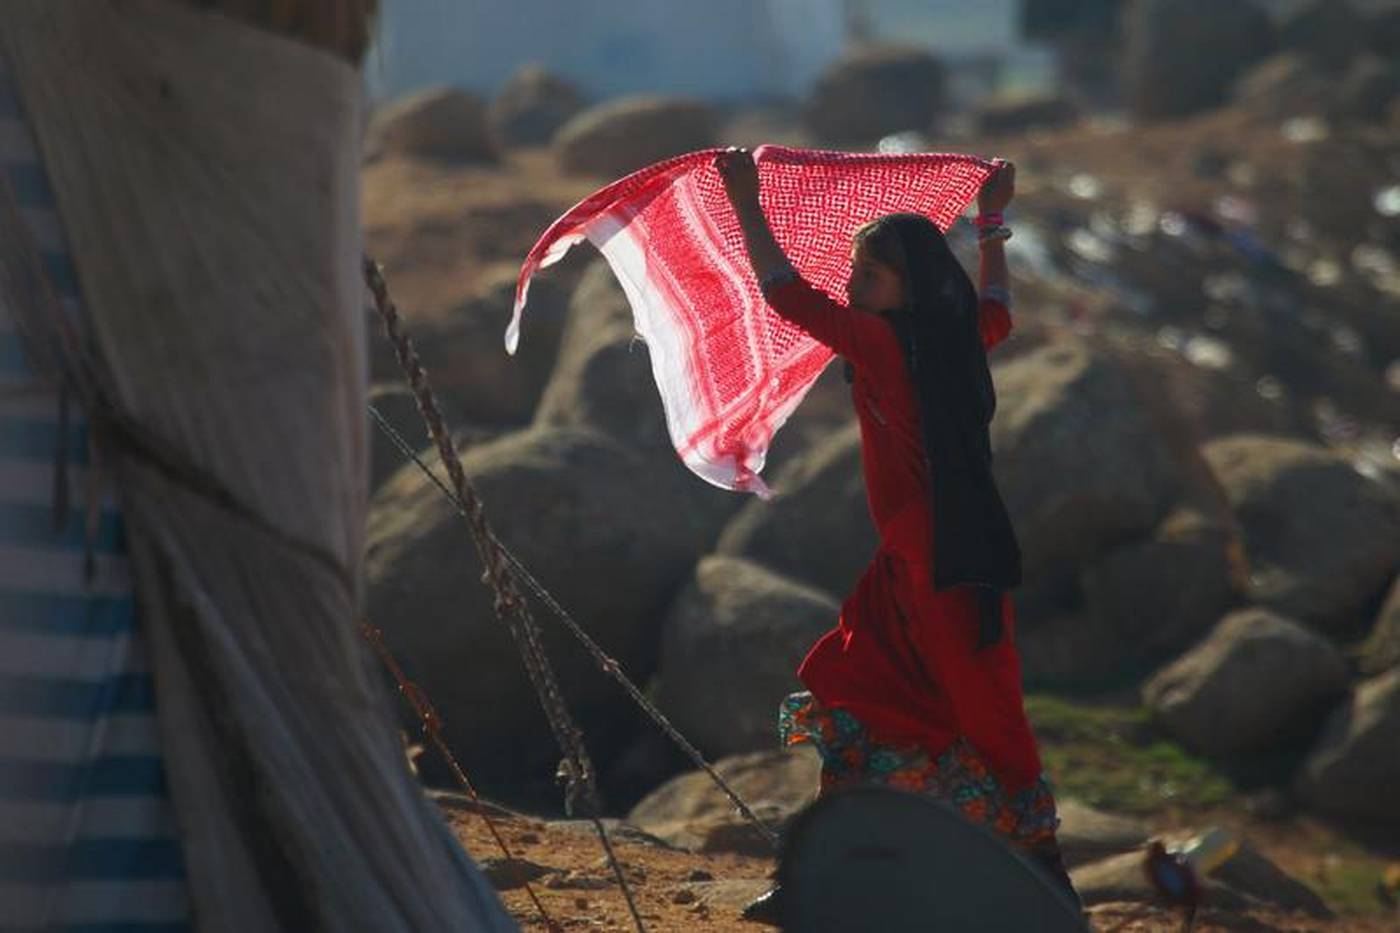 Climate stress drove wave of Arab Spring refugees - researchers